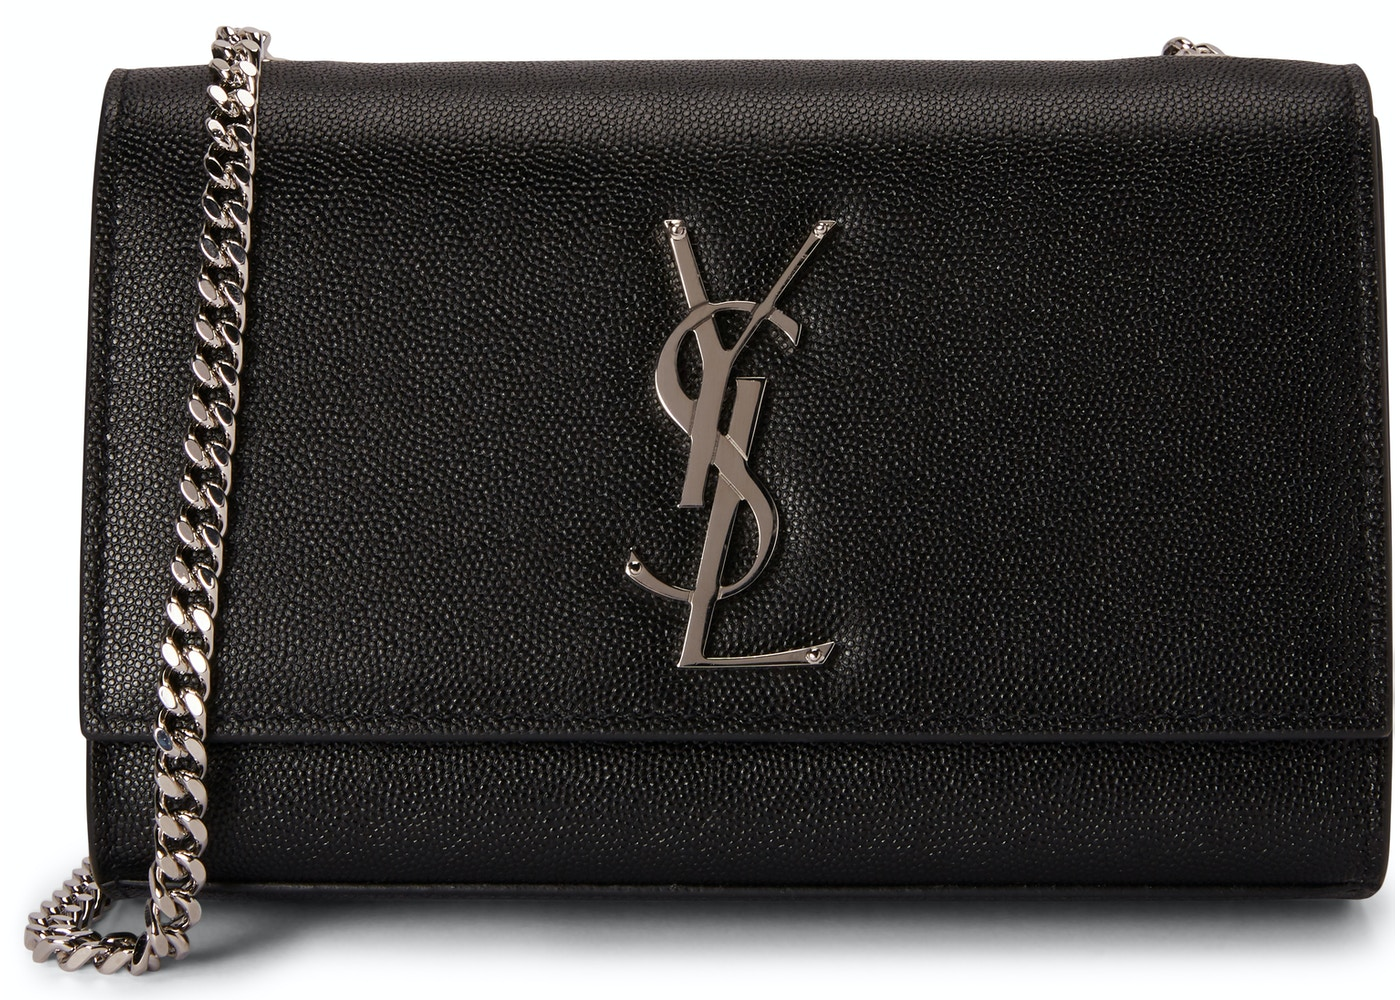 4dbbd63302 Buy   Sell Saint Laurent Kate Handbags